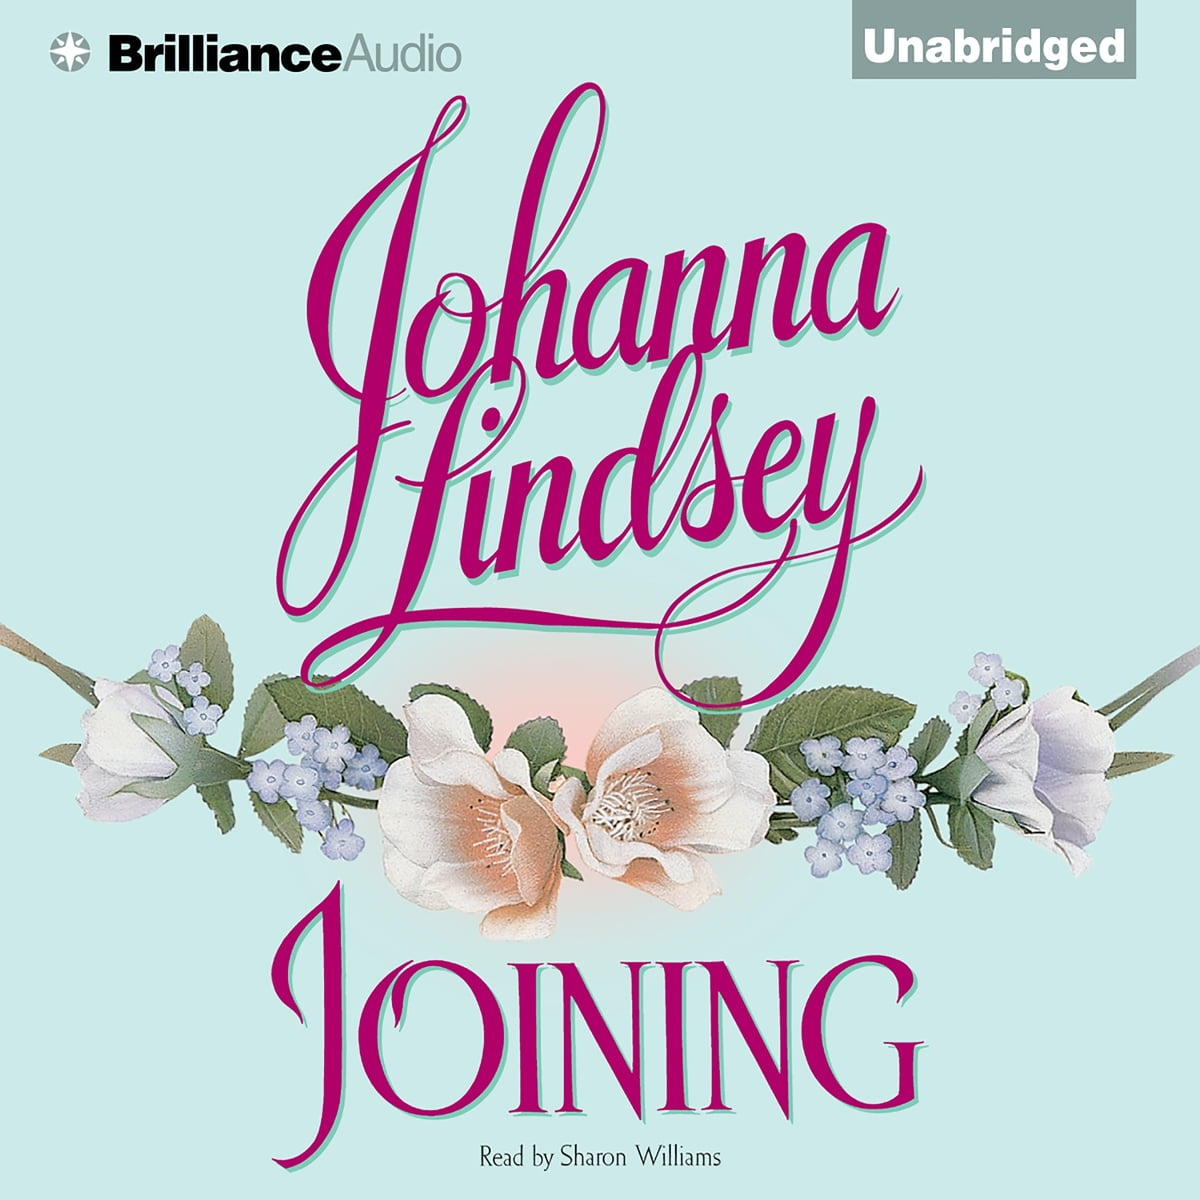 Joining Shefford Series Ebook Whirlpool 677818l Dryer Manual For Gas And Electric Dryers Array Audiobook By Johanna Lindsey 9781423366232 Rakuten Kobo Rh